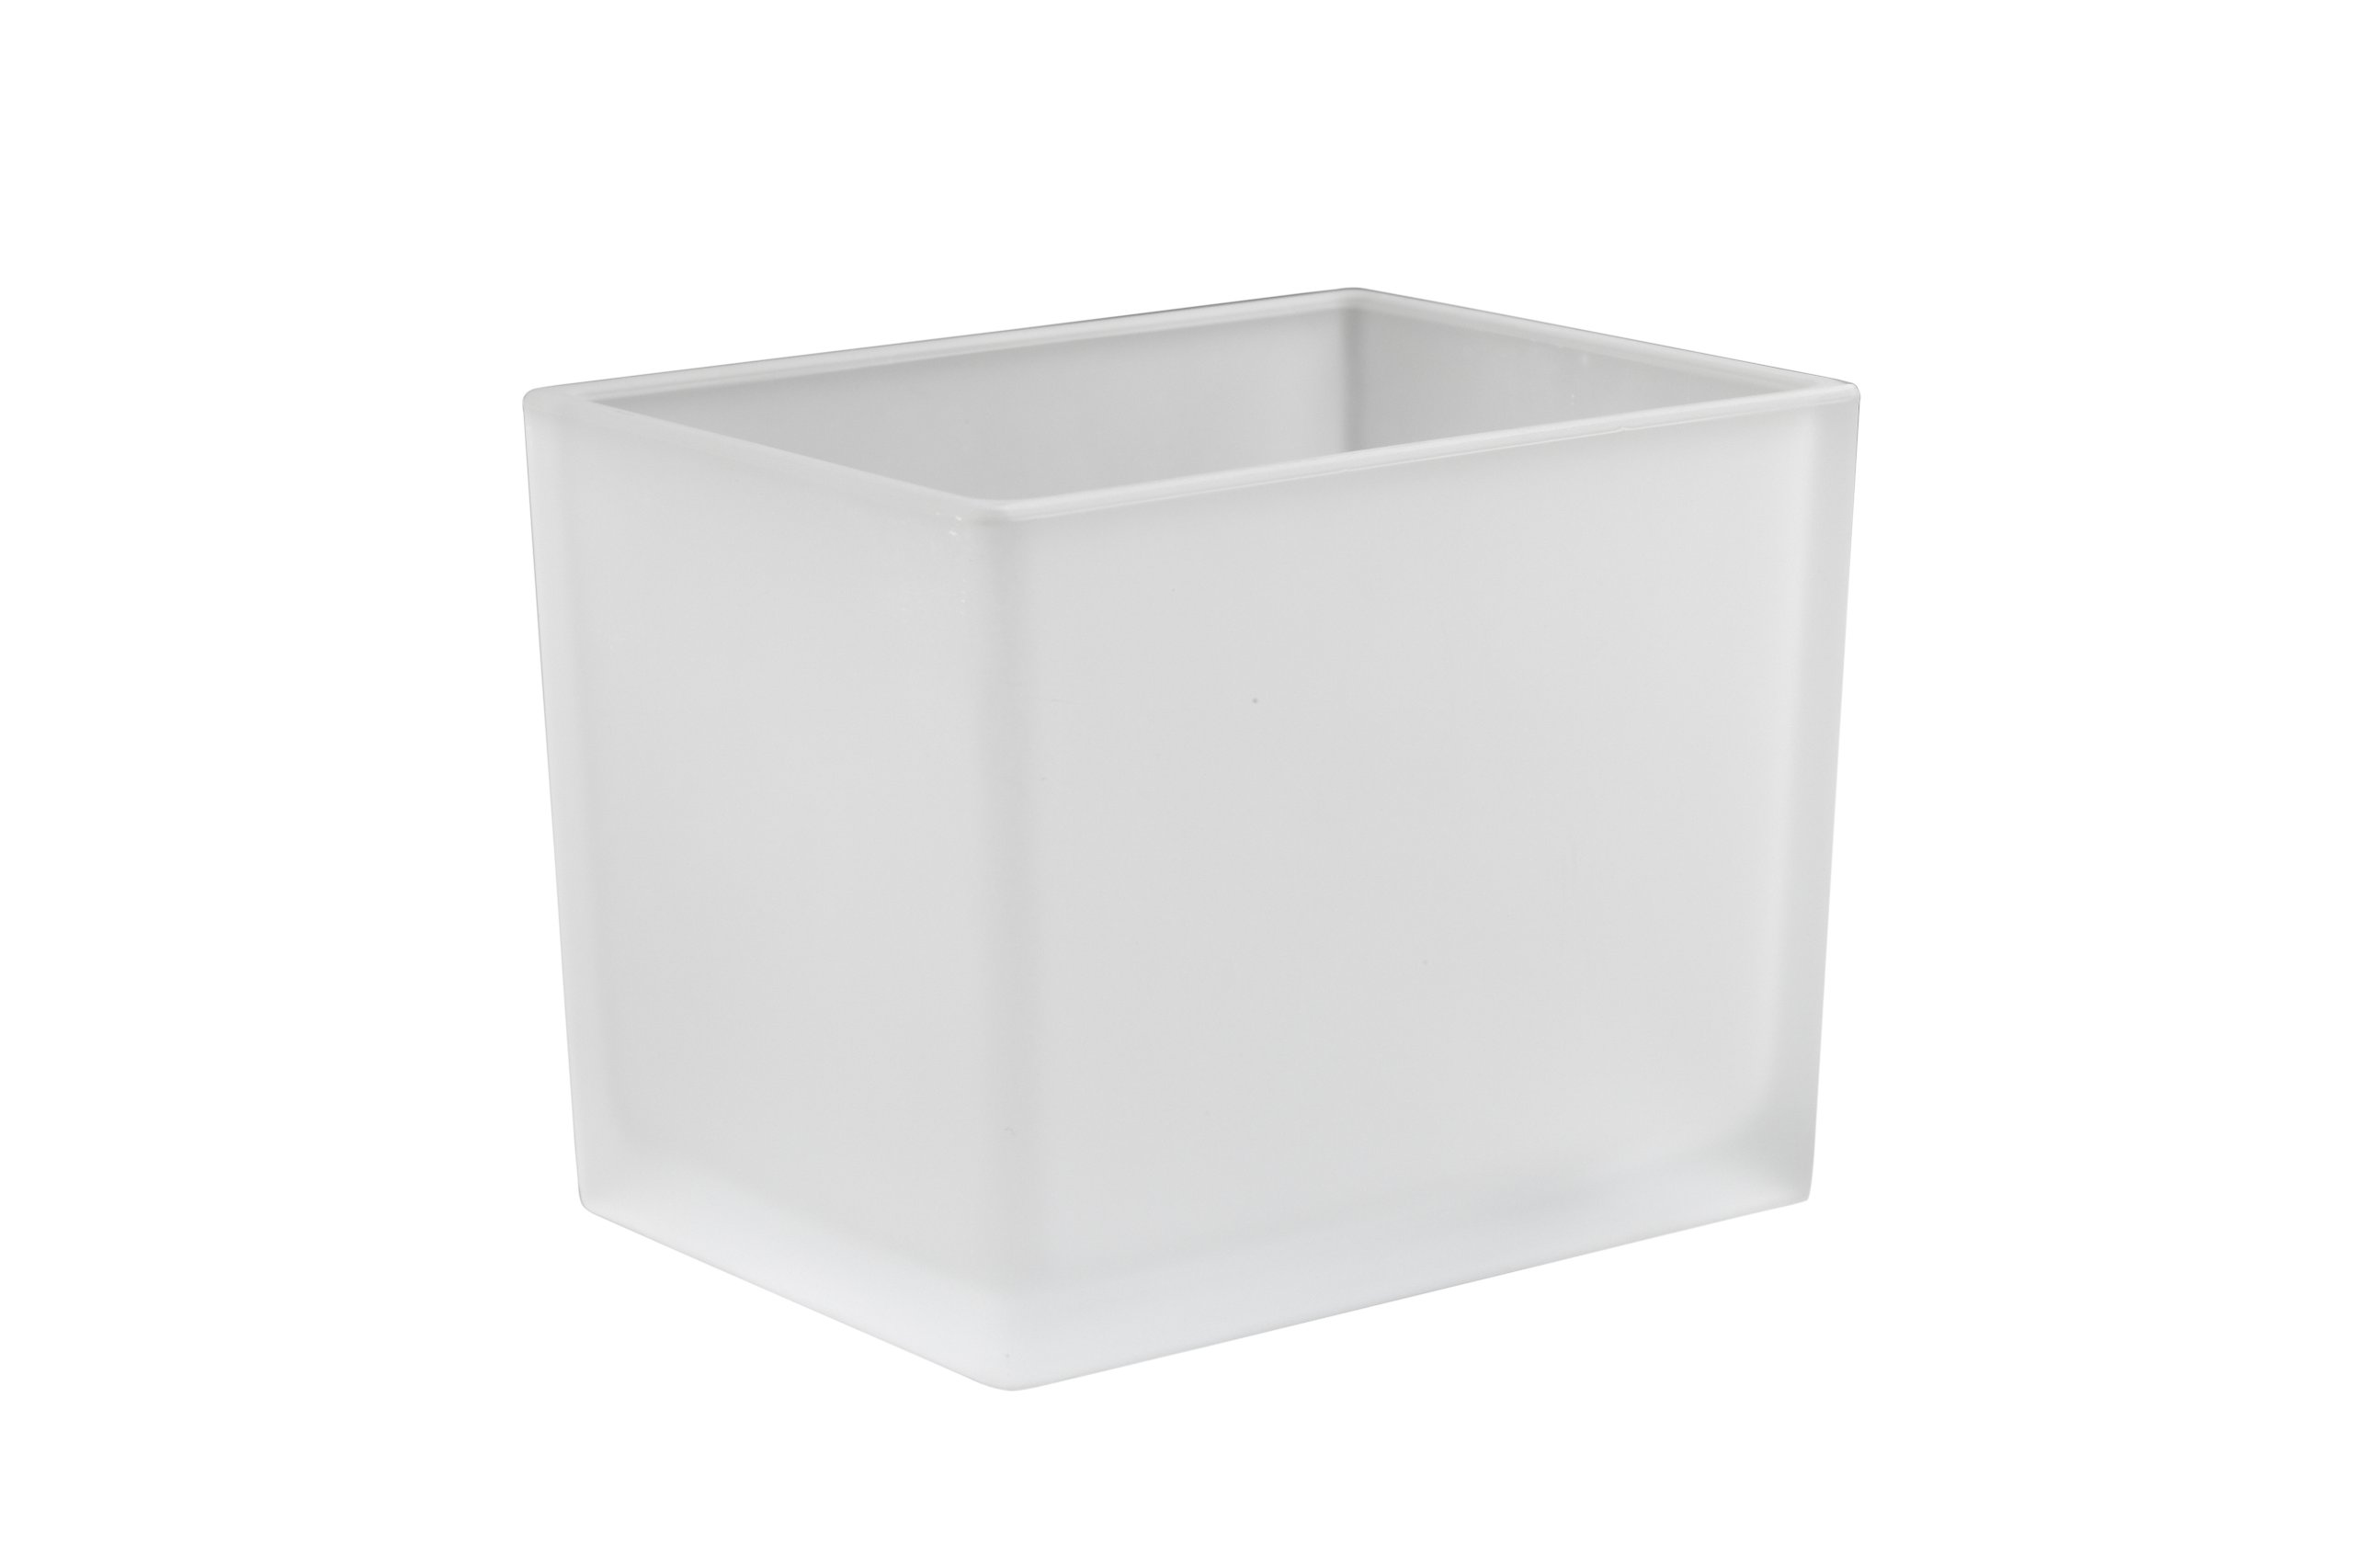 Kohler K-11596-FRG Loure Container, Frosted Glass